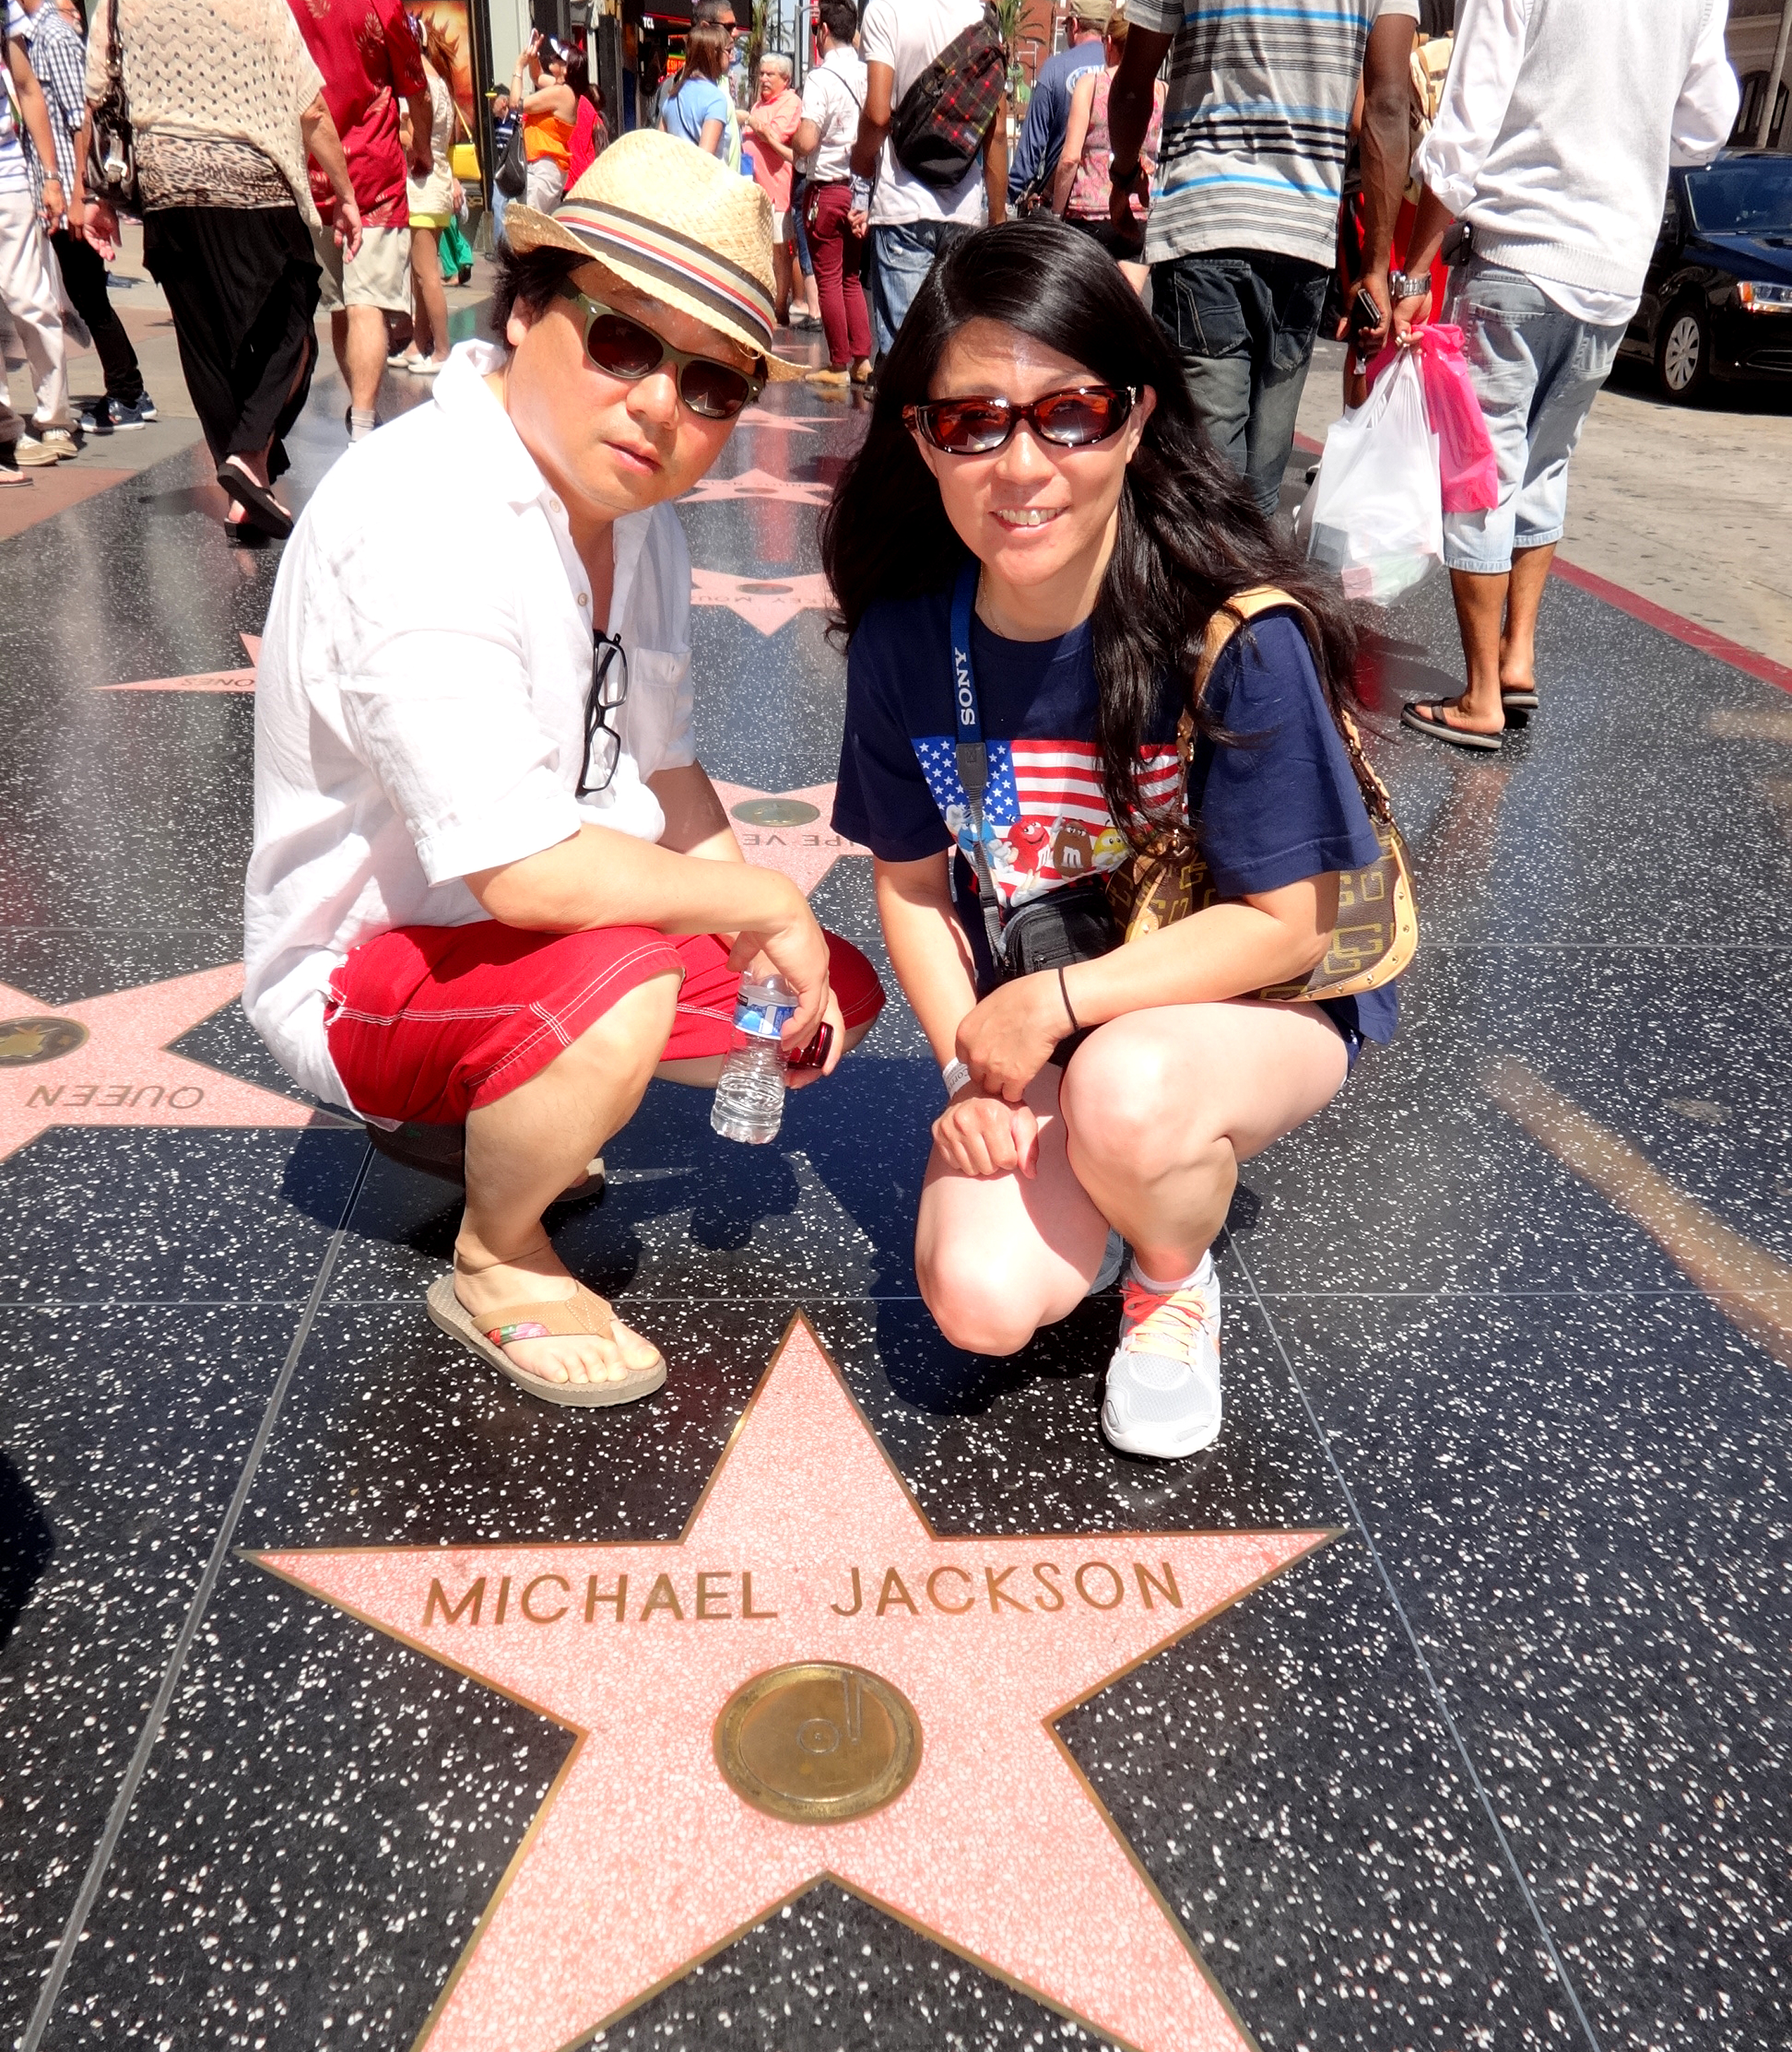 Michael Jackson's Star, Walk of Fame